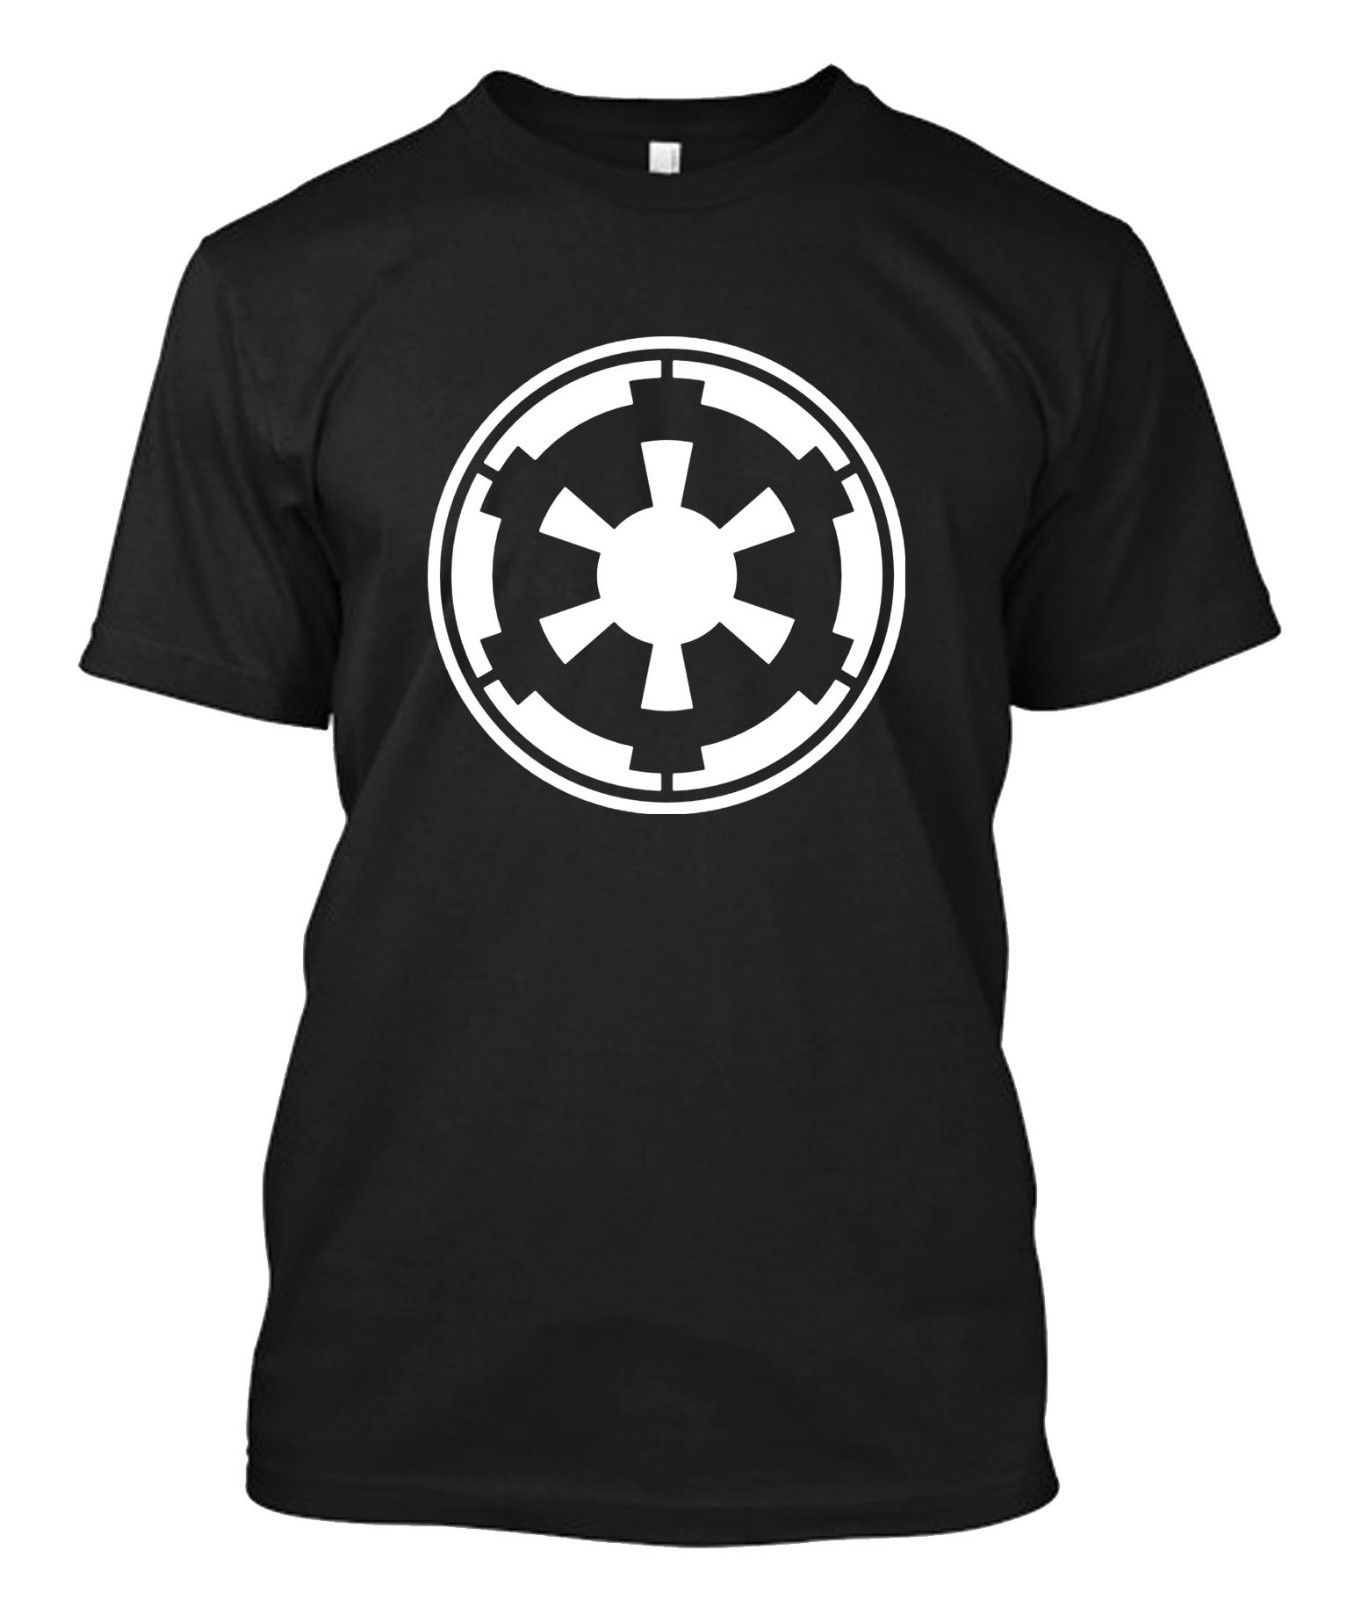 New Movie Star Wars Mad Engine Empire Custom Men 39 s Black T Shirt Tee Free shipping Harajuku Tops Classic Unique T Shirt in T Shirts from Men 39 s Clothing